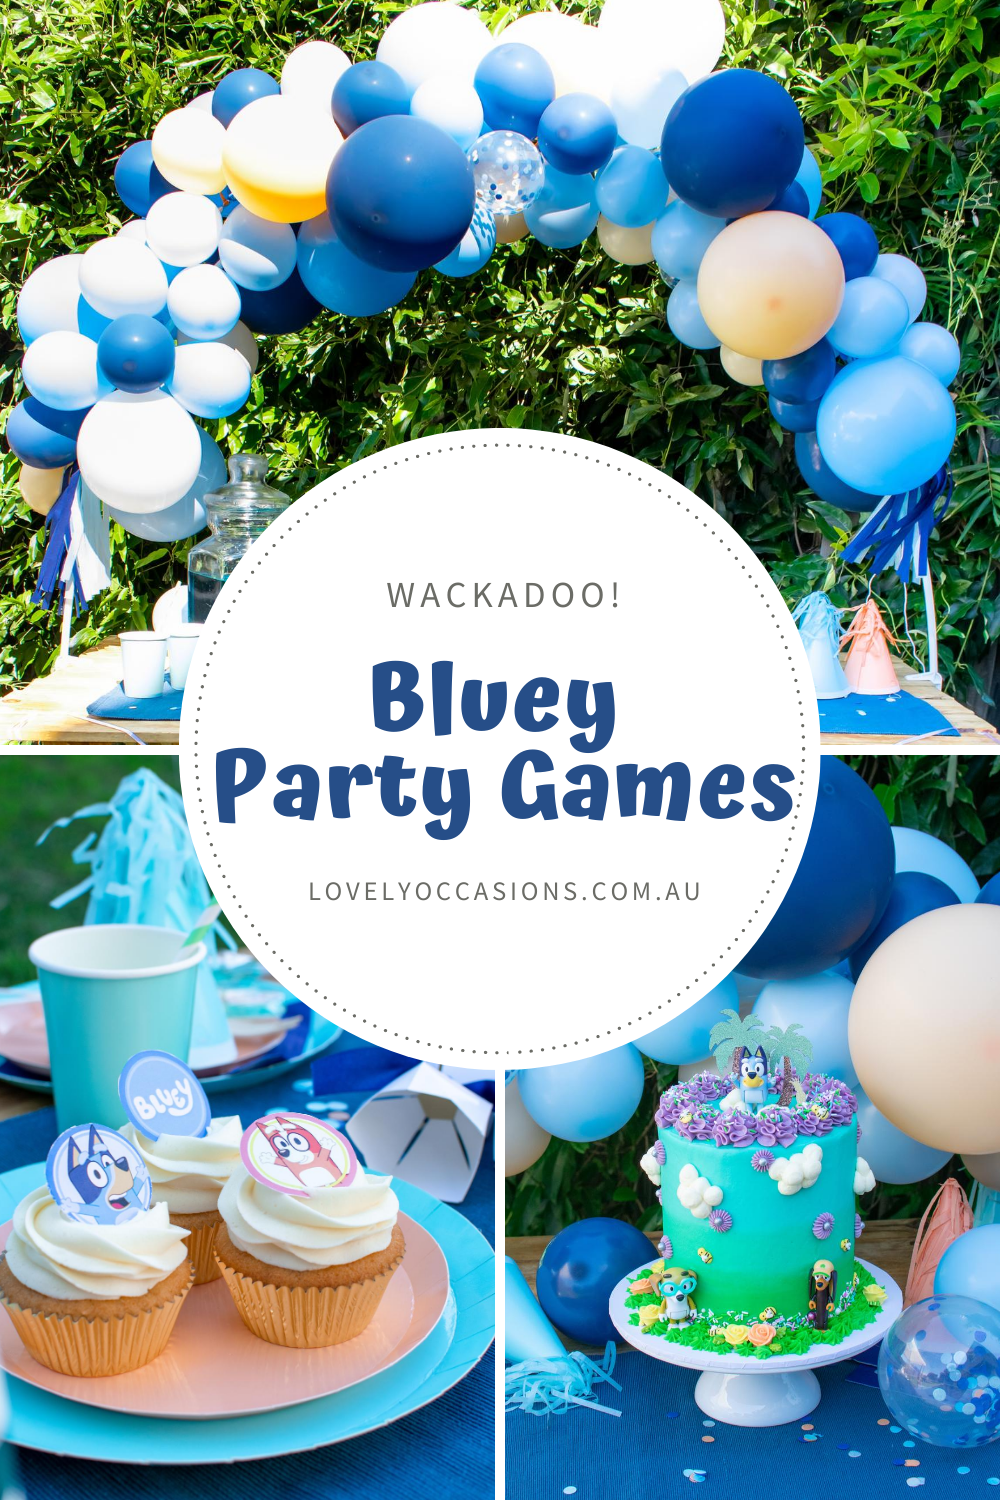 Bluey Party Games